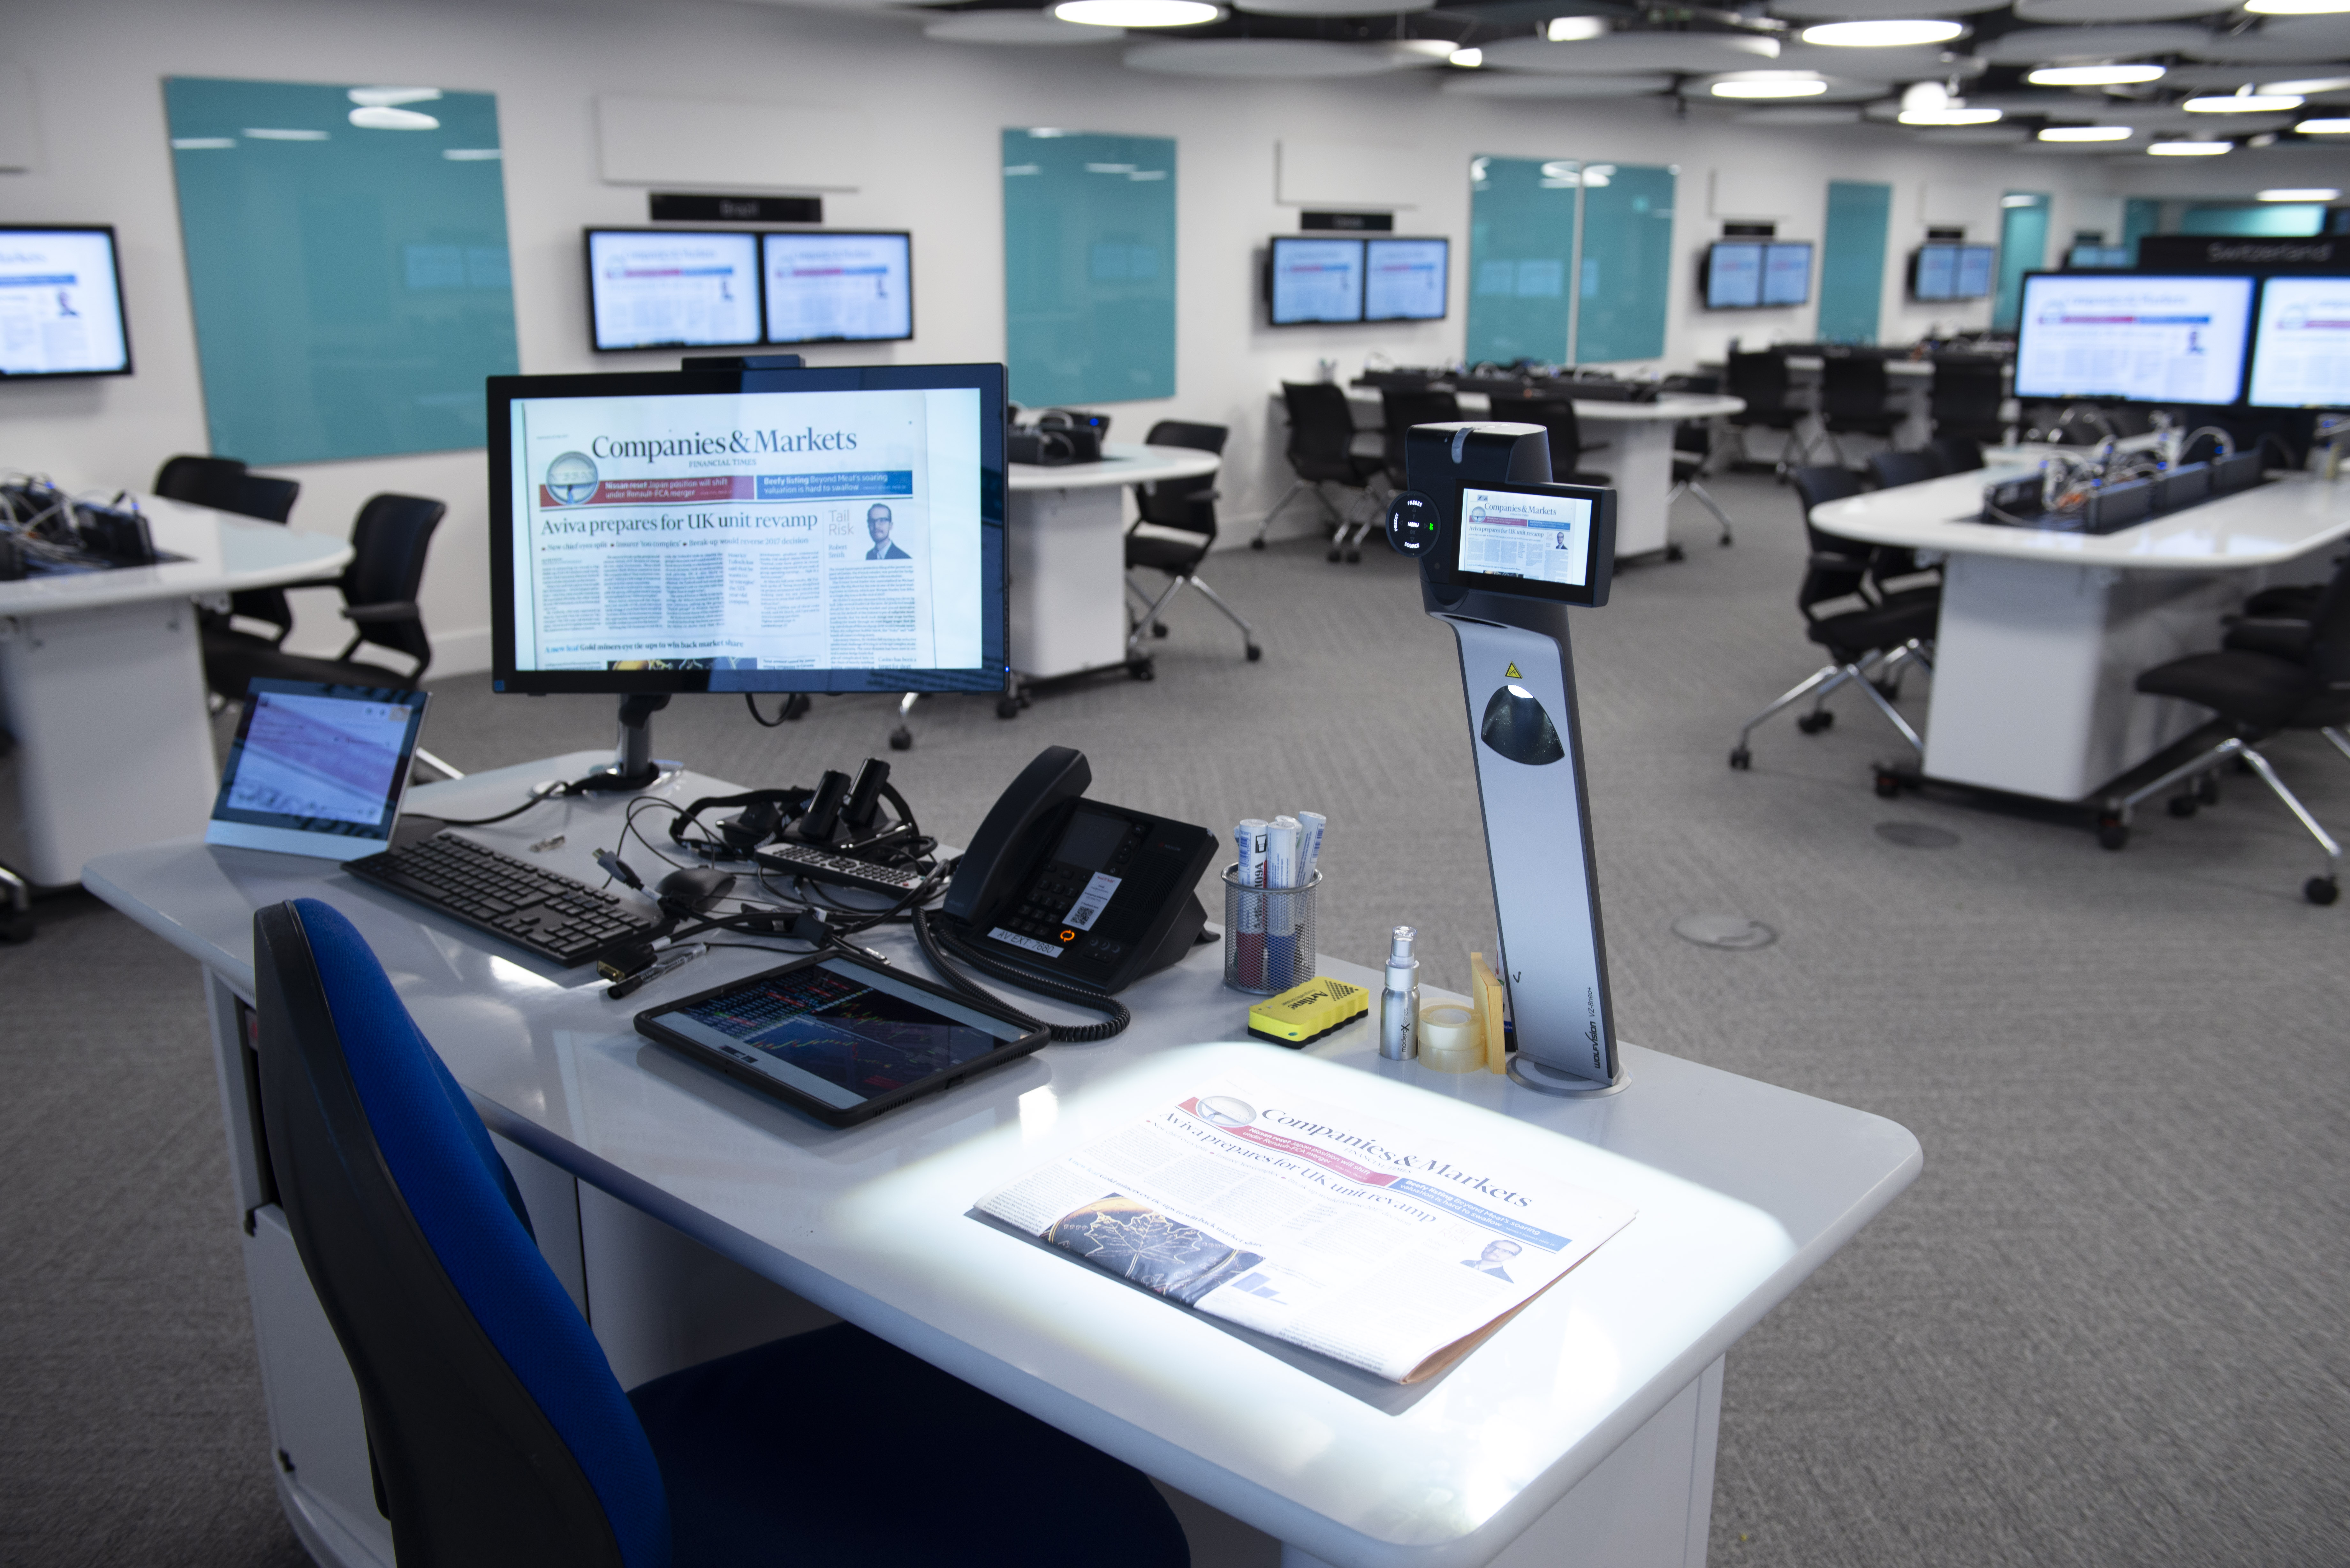 WolfVision vSolution MATRIX active learning classroom collaboration system, installed at London Business School.